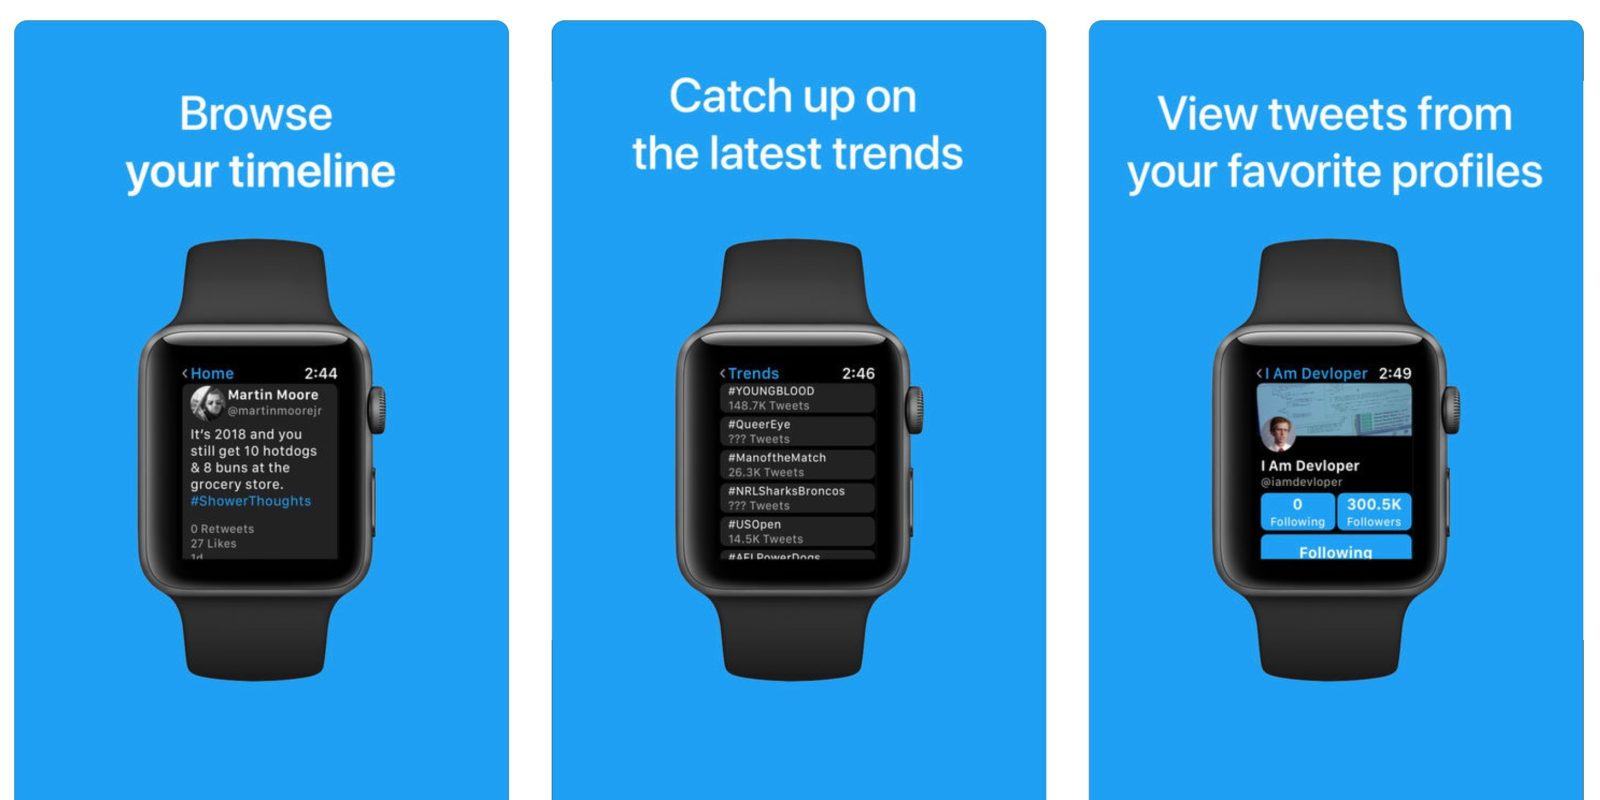 fcd76d4f24 Chirp is a new app that aims to bring full Twitter support to Apple Watch